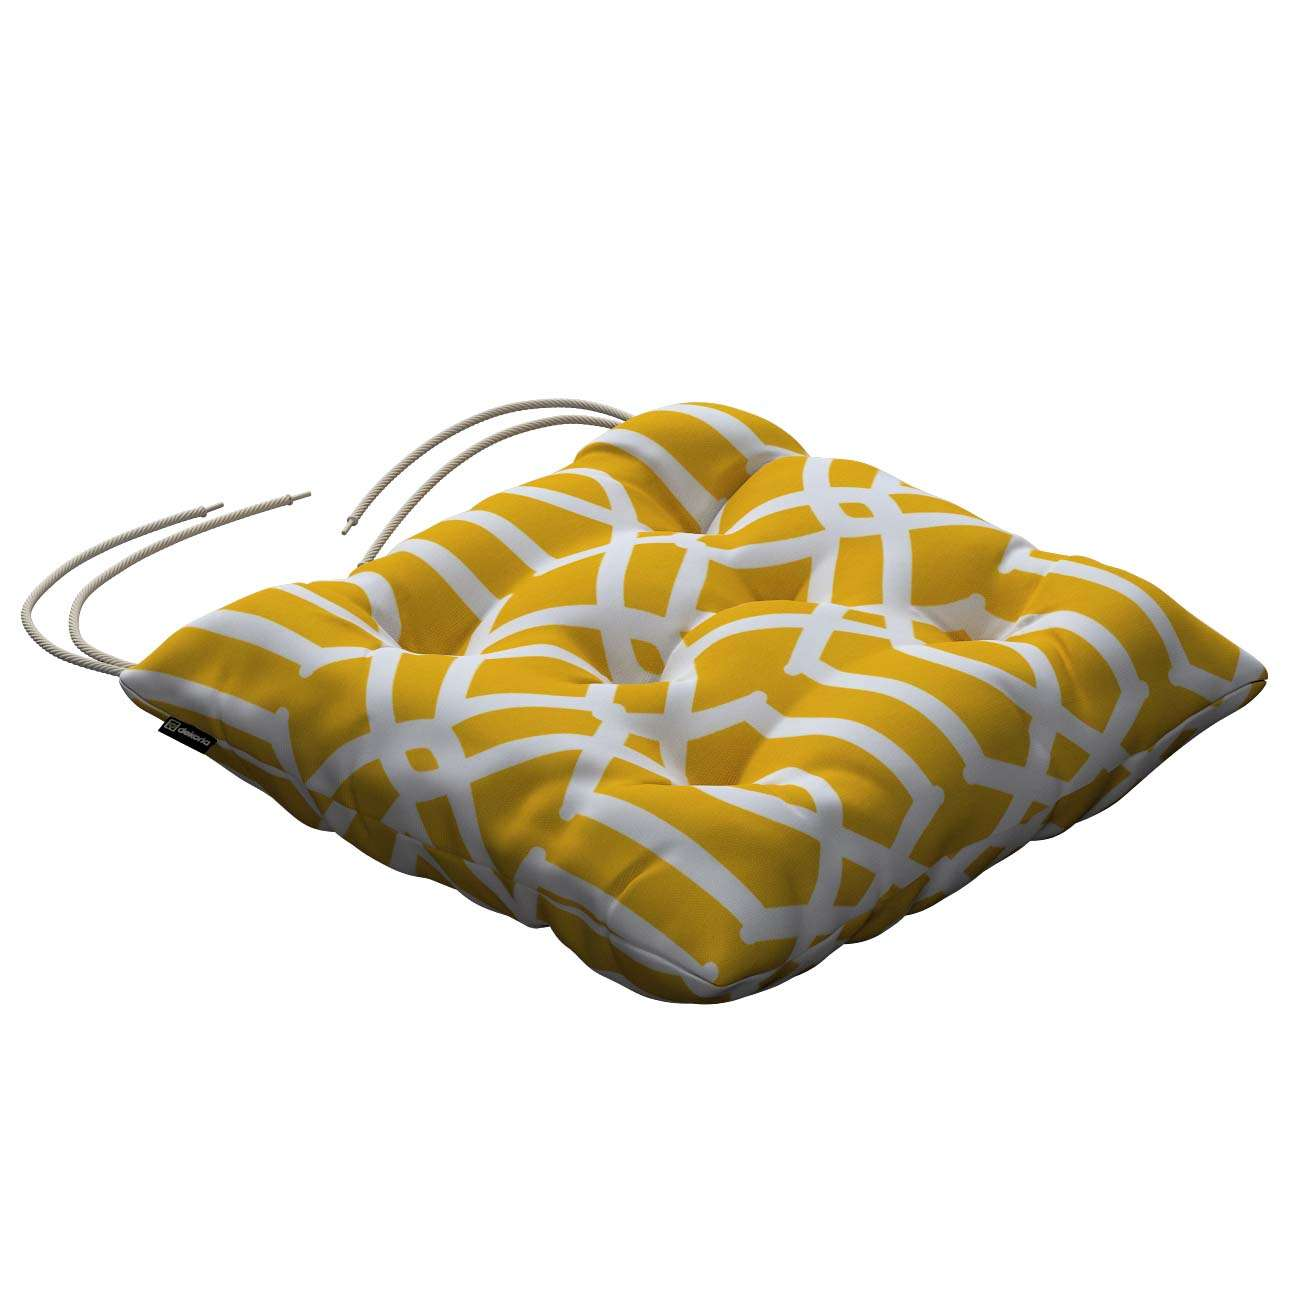 Jack seat pad with ties in collection Comics/Geometrical, fabric: 135-09